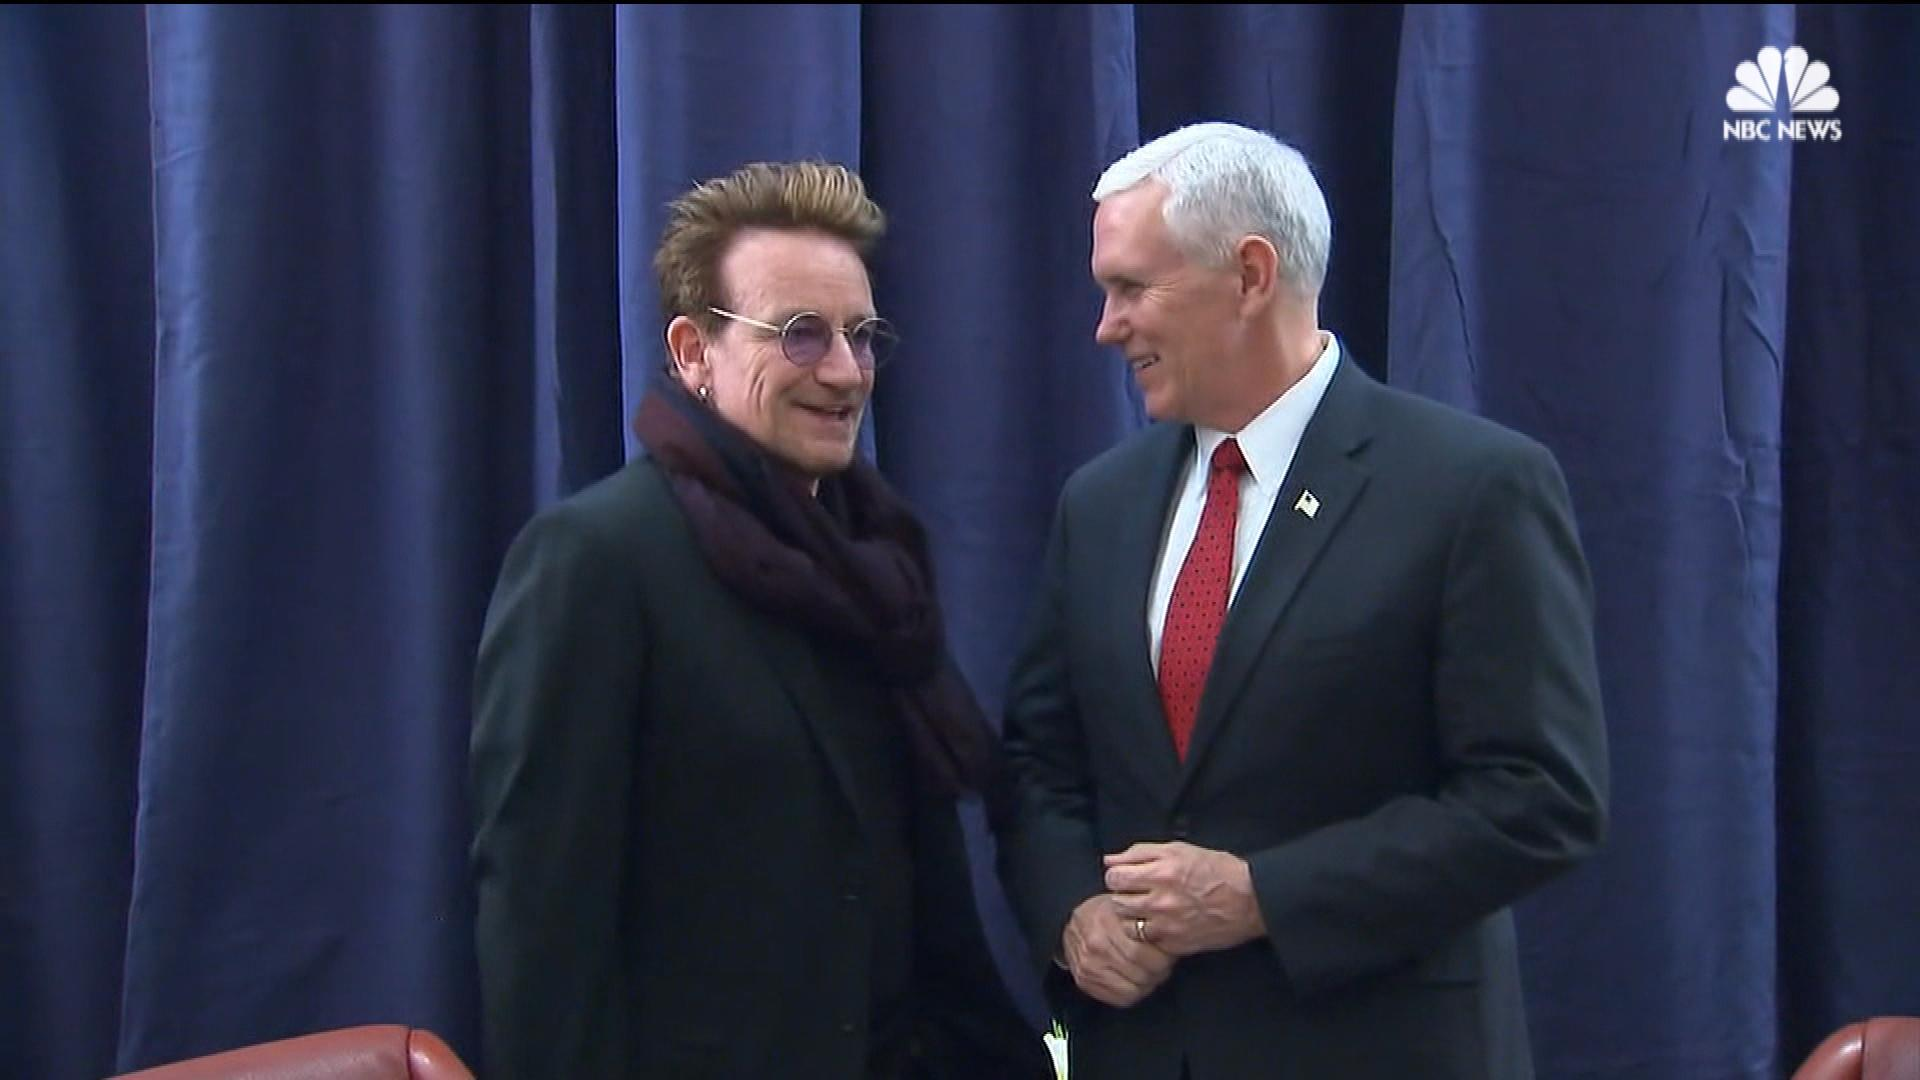 Bono Greets VP Pence at Surprise Meeting in Germany - NBC News